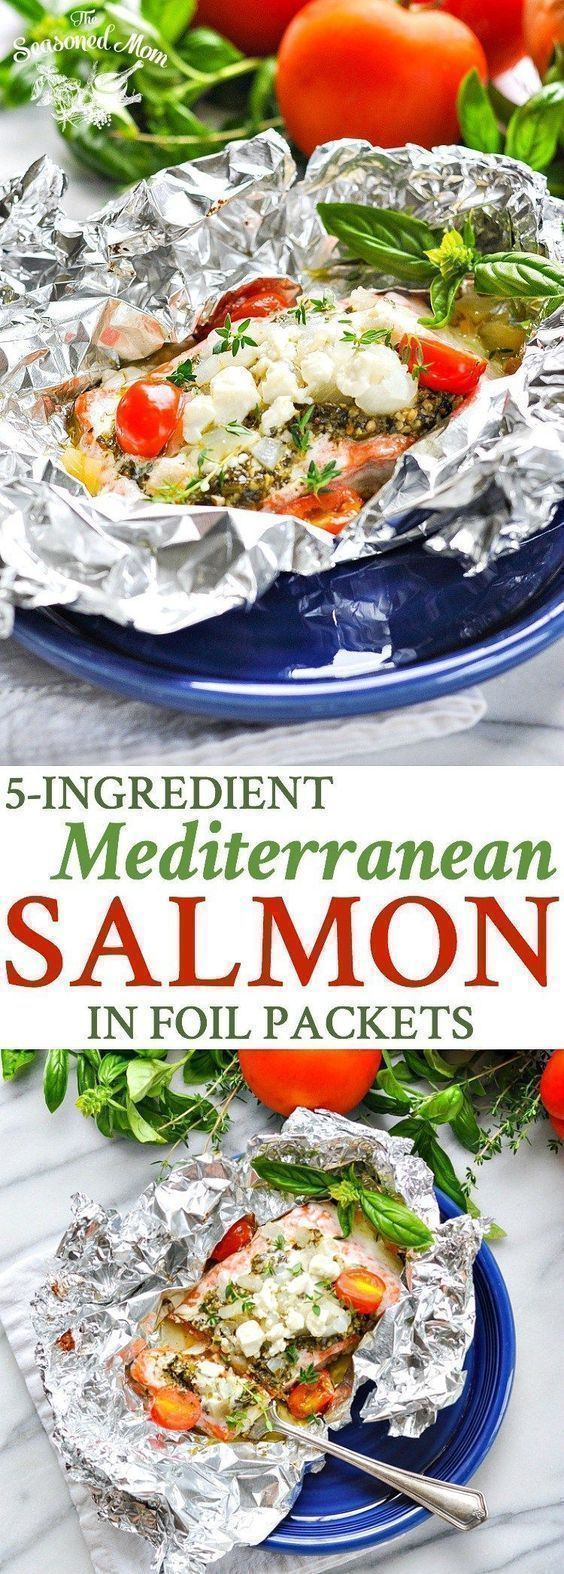 5-Ingredient Mediterranean Salmon in Foil Packets | Seafood Recipes | Easy Dinner Recipes | Dinner Ideas | Healthy 5 Ingredient or Less Recipes | Healthy Recipes | Salmon Recipes Baked | Camping Food | Camping Meals | Gluten Free #campingfoodrecipes #campingmeals #campingrecipes